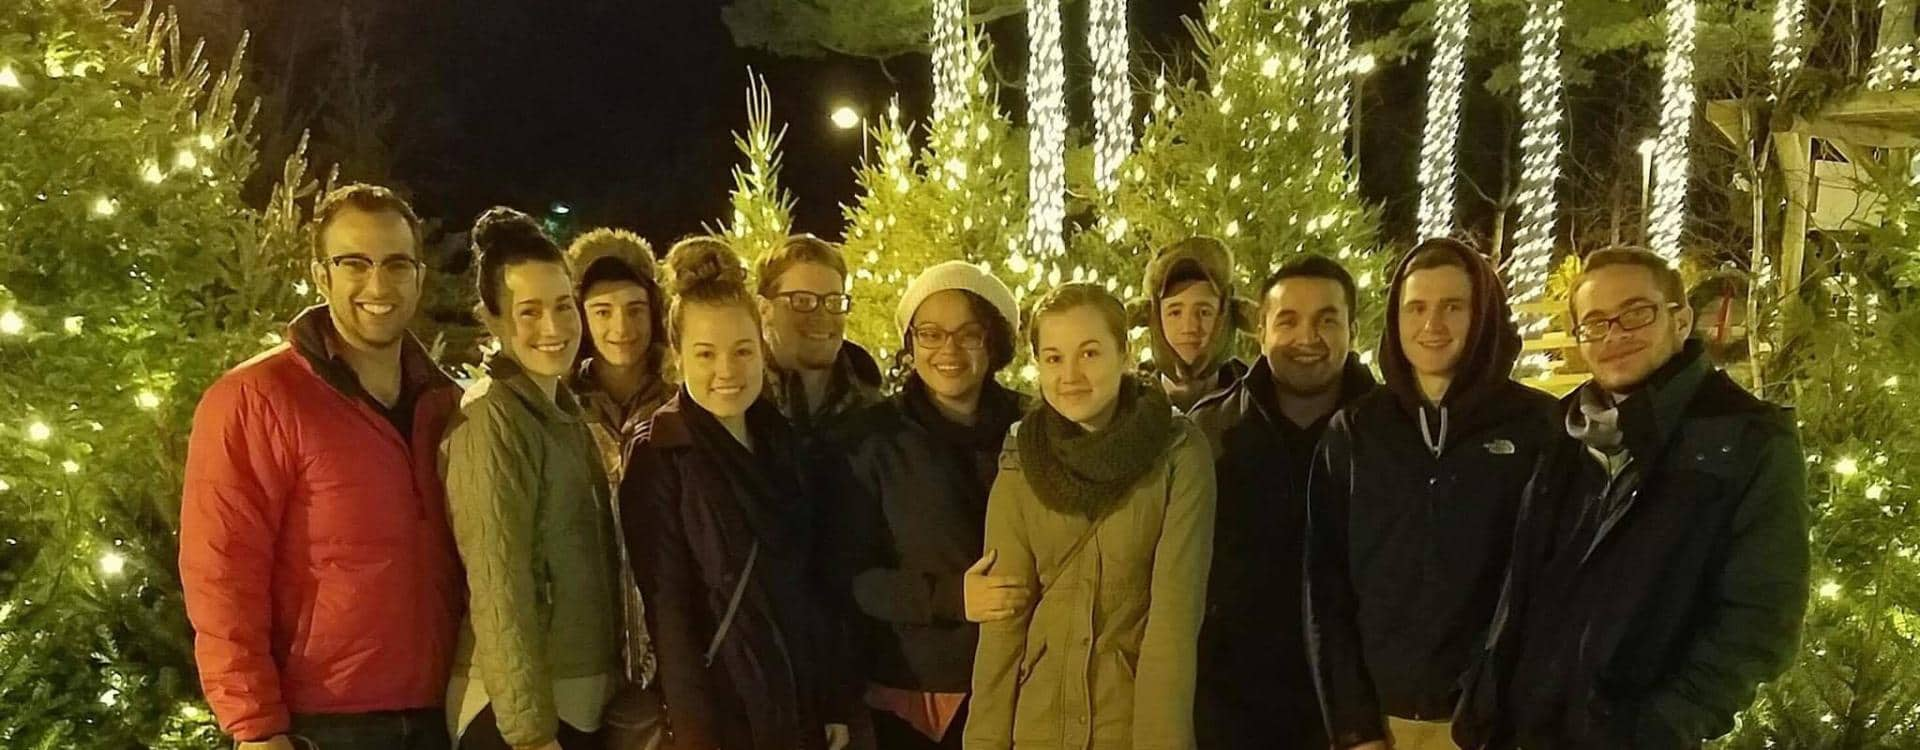 fun christmas outing for young adults